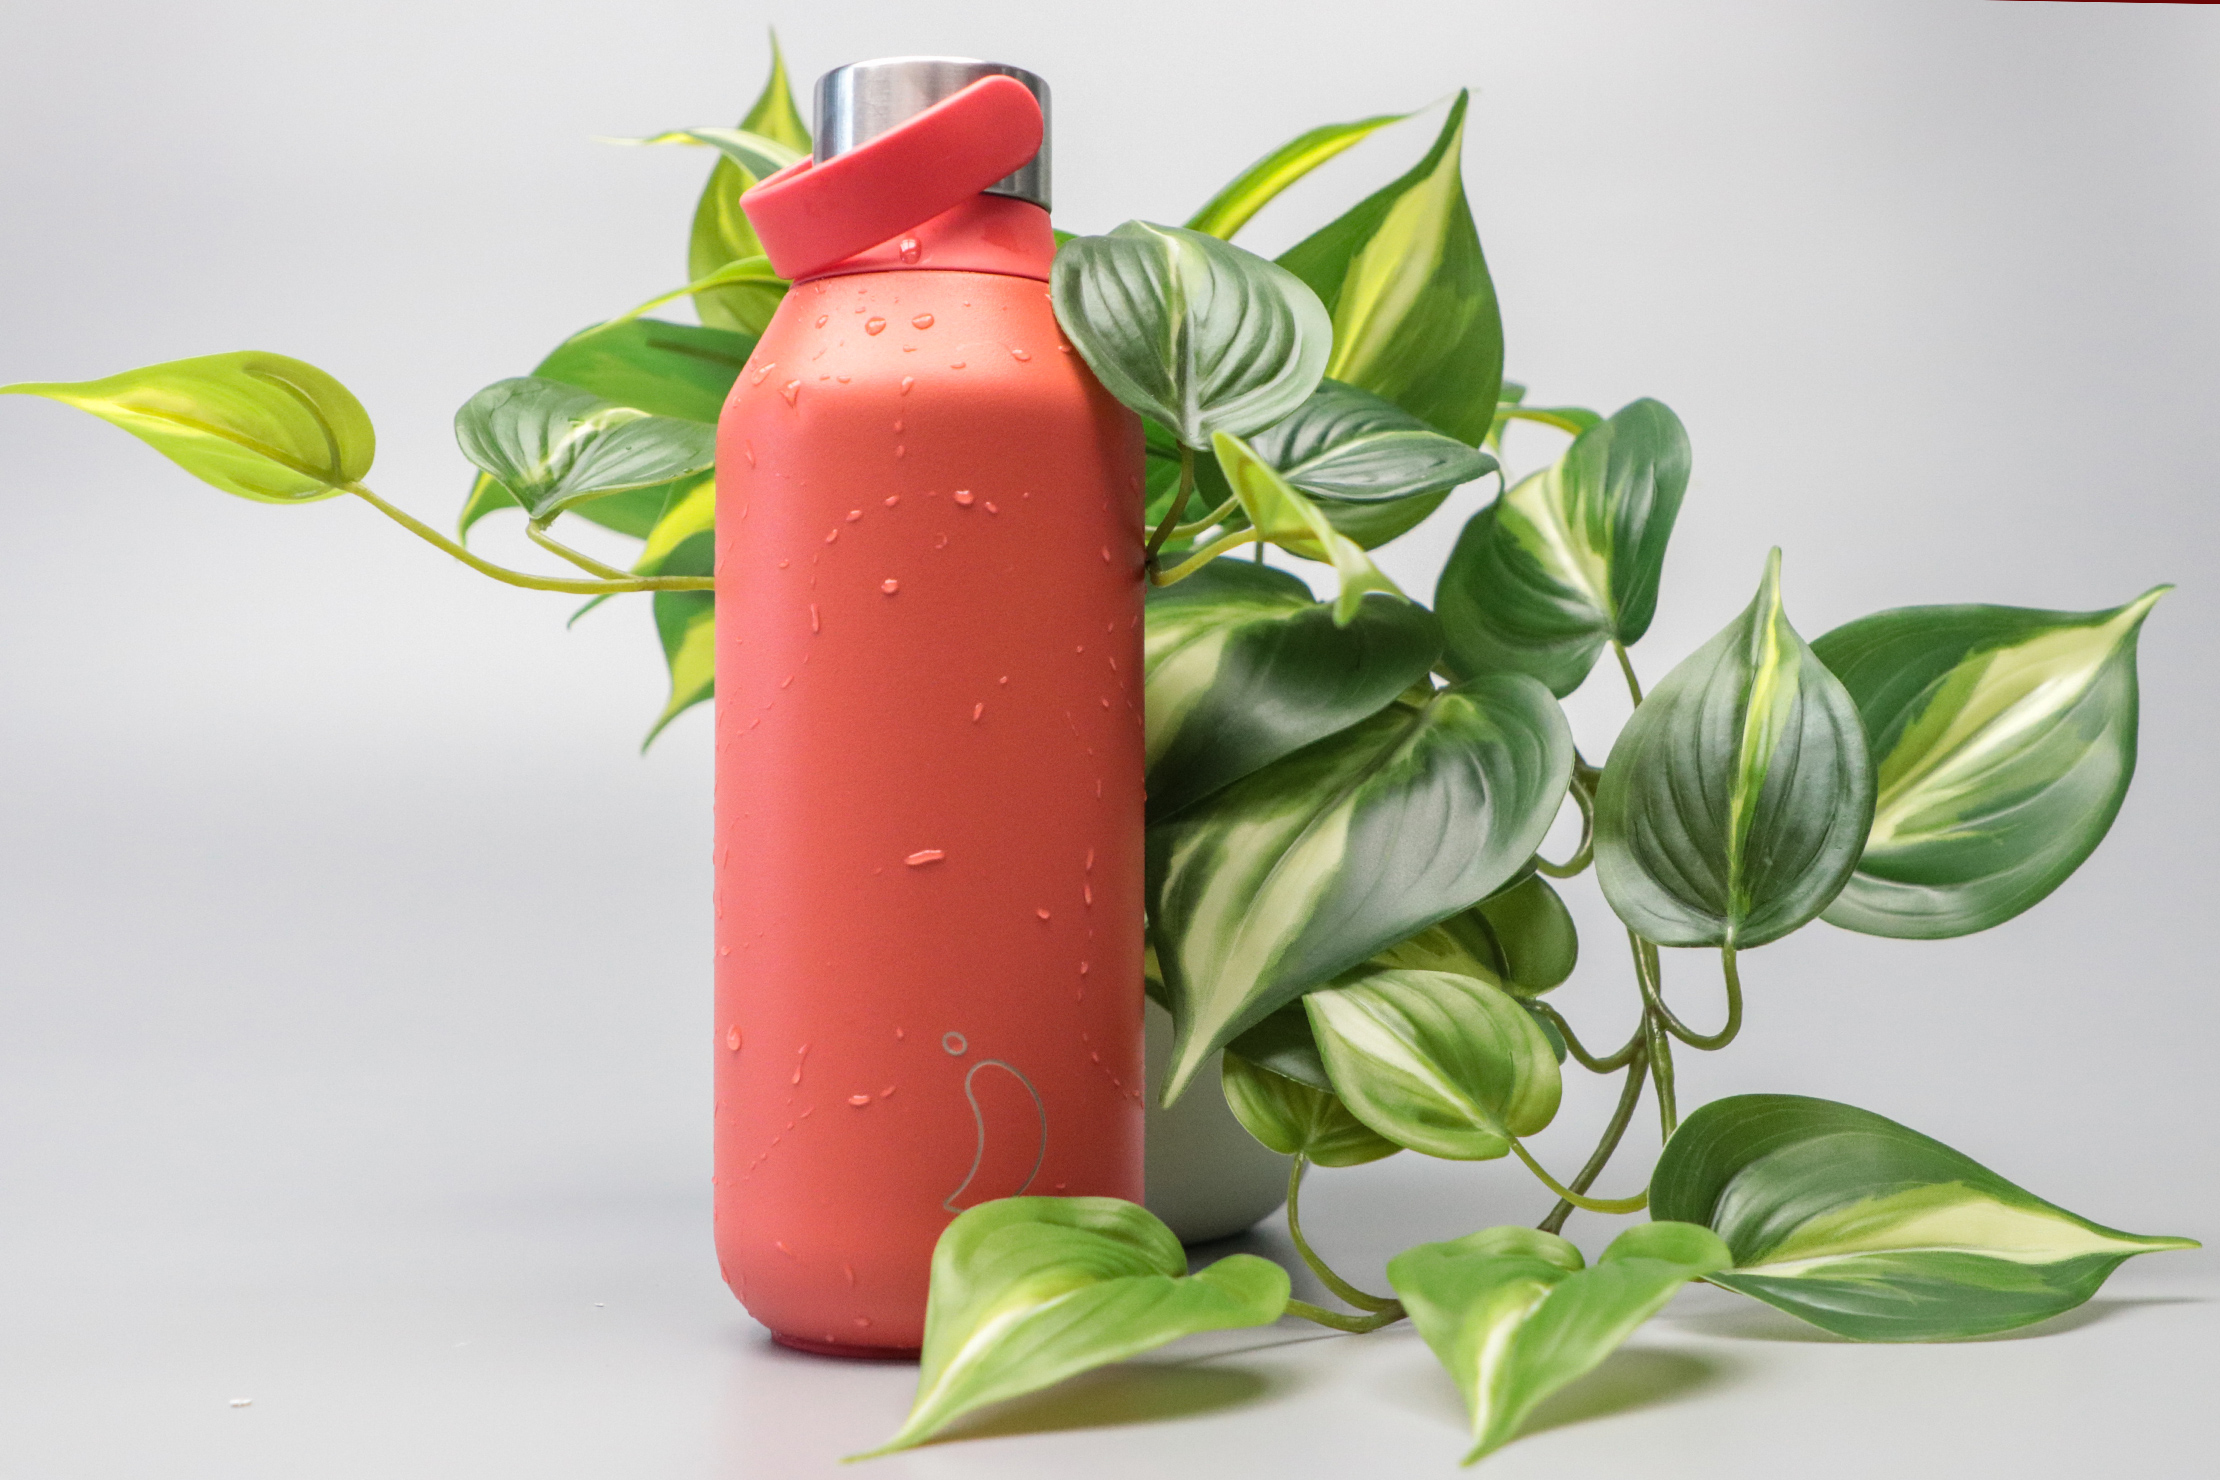 Chilly's Series 2 Water Bottle With Leaves